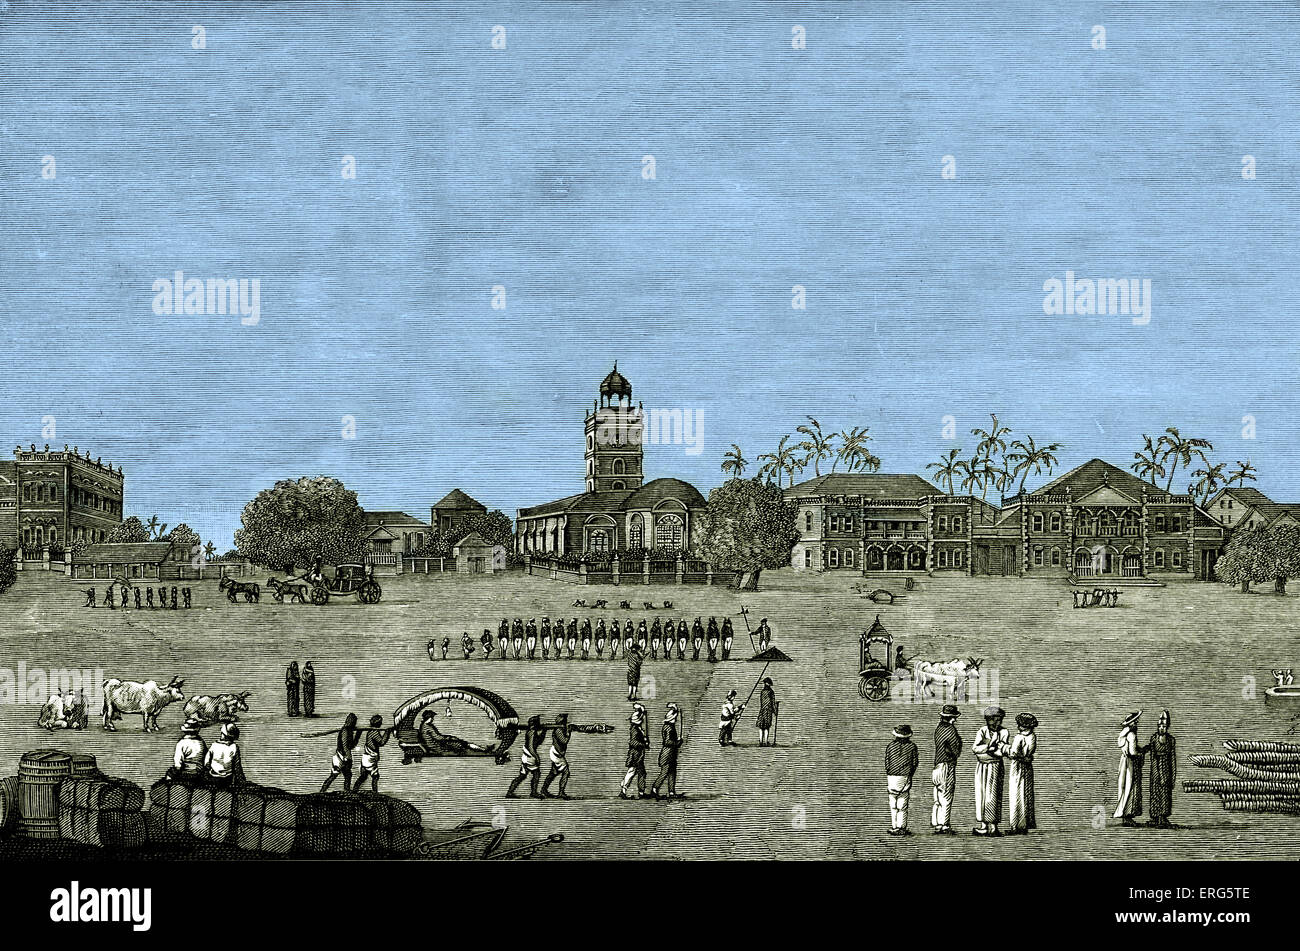 Bombay Green in 1767. During the British Raj. Tinted version. - Stock Image